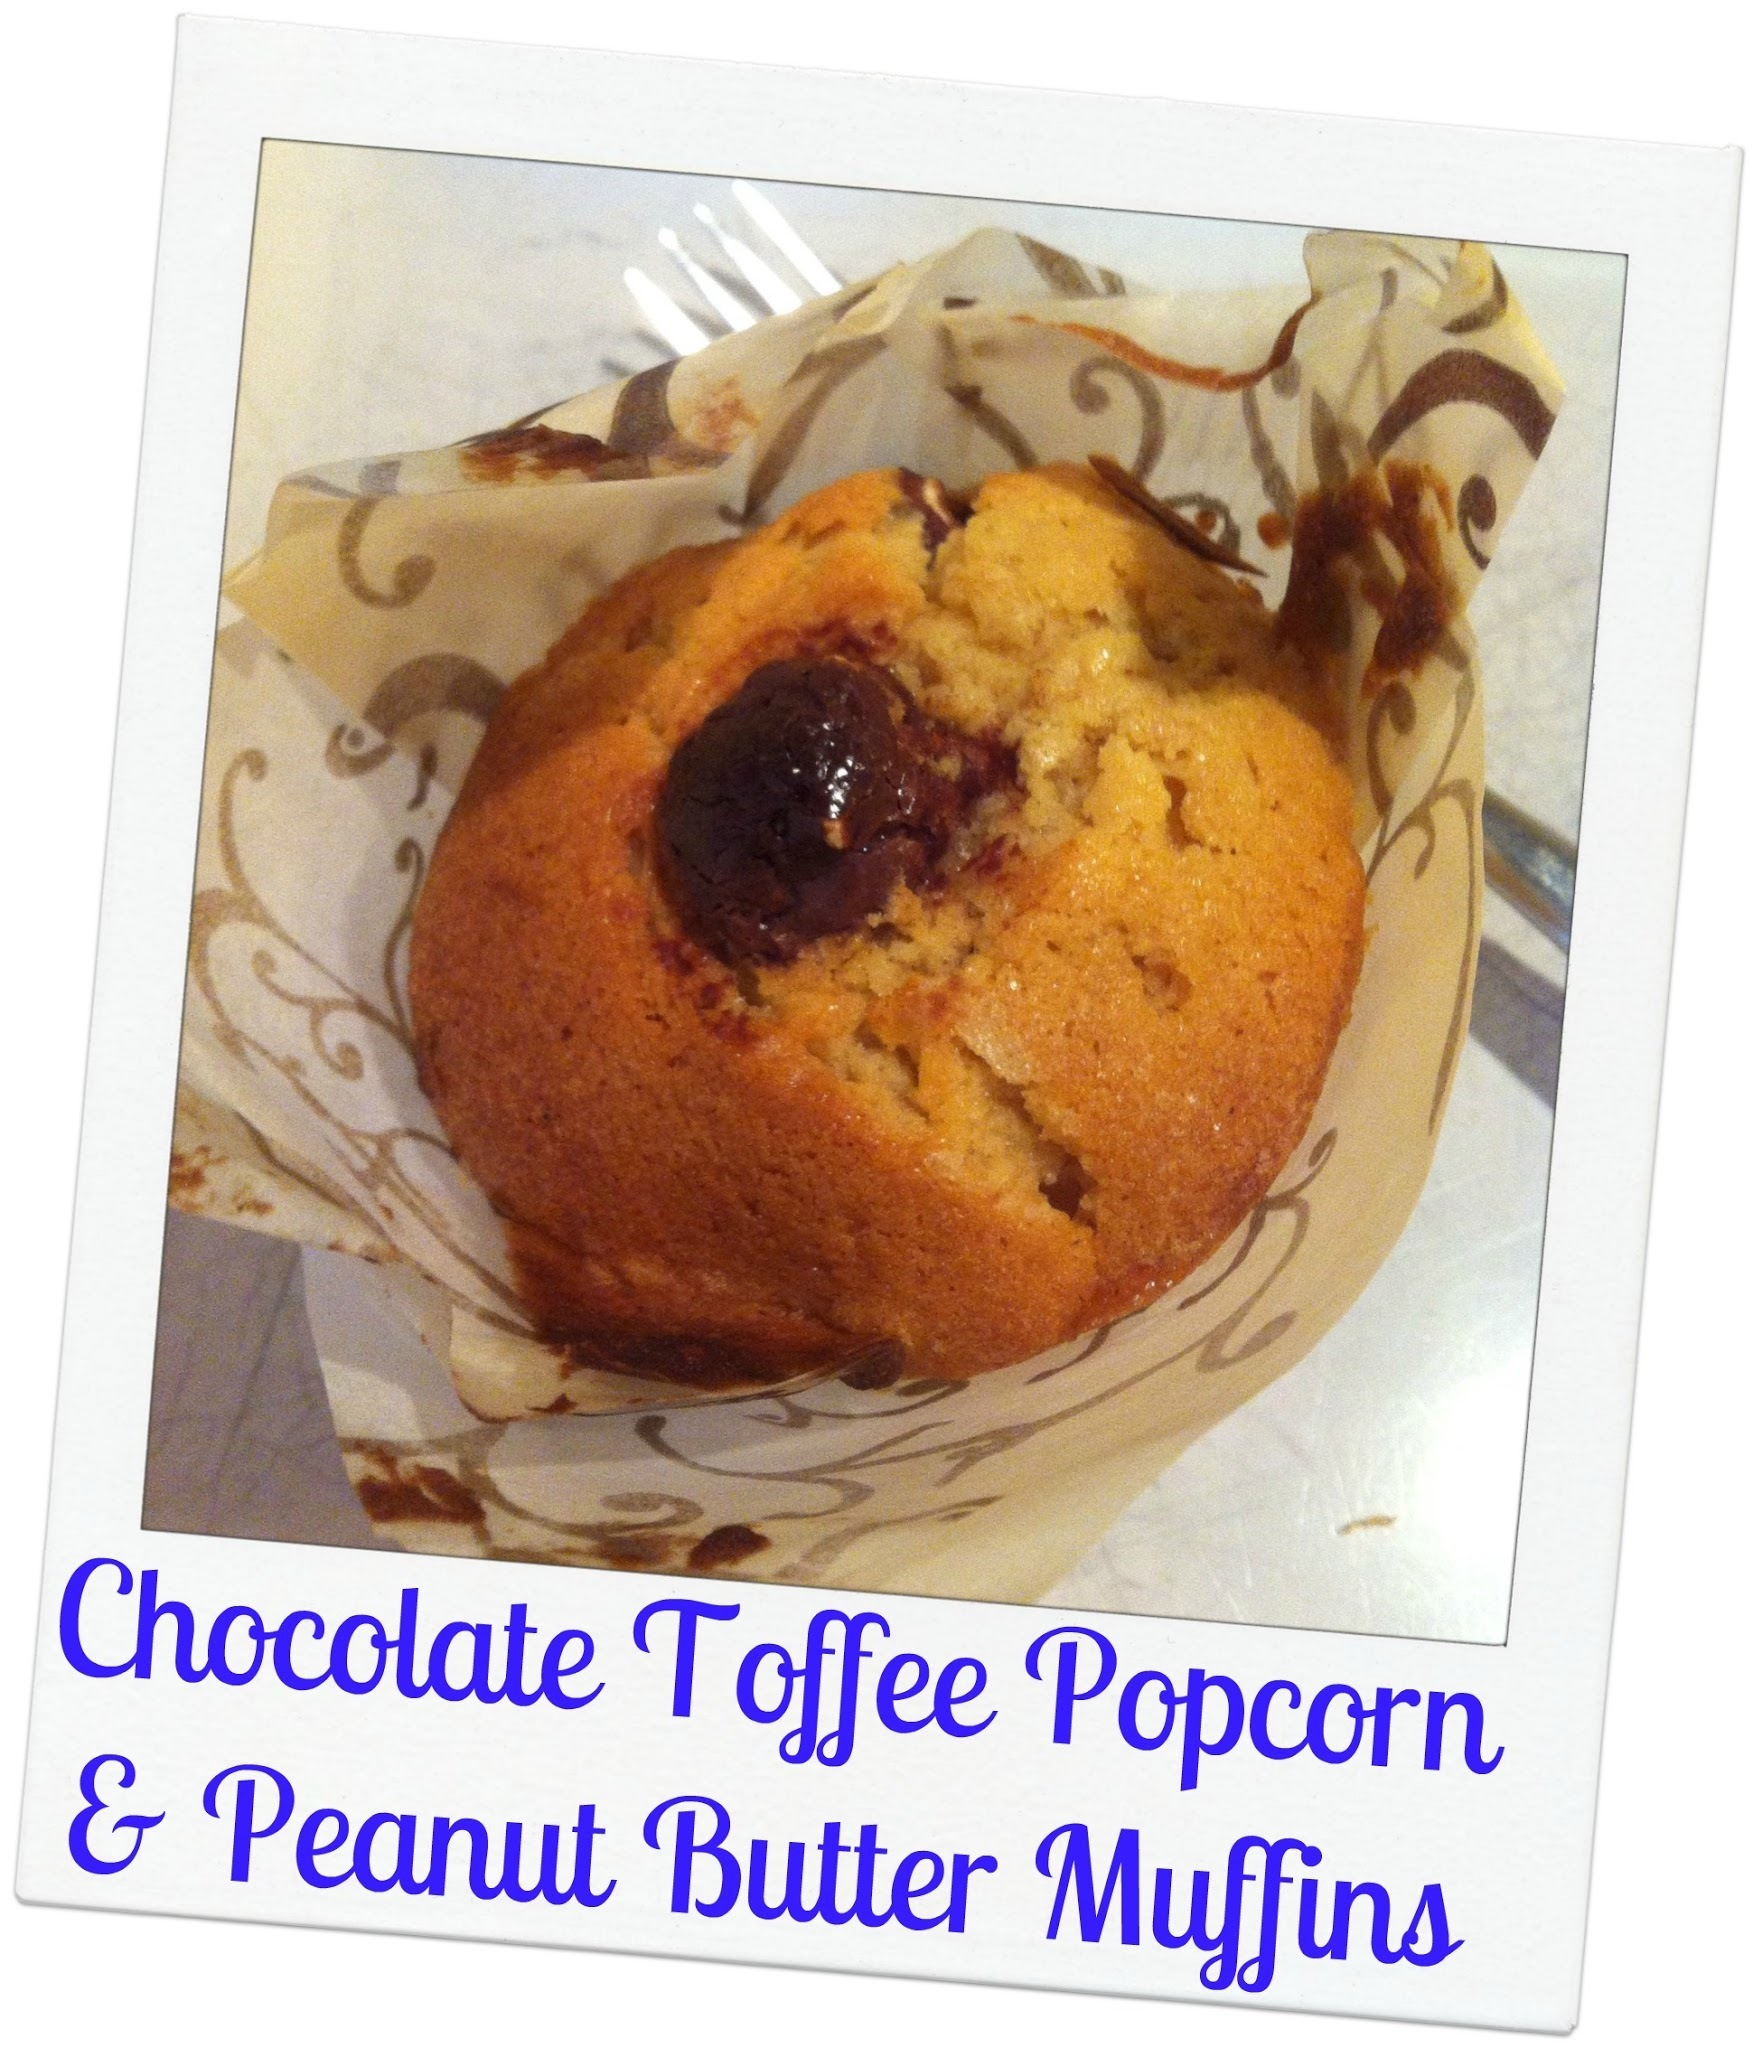 Chocolate Toffee Popcorn & Peanut Butter Muffins